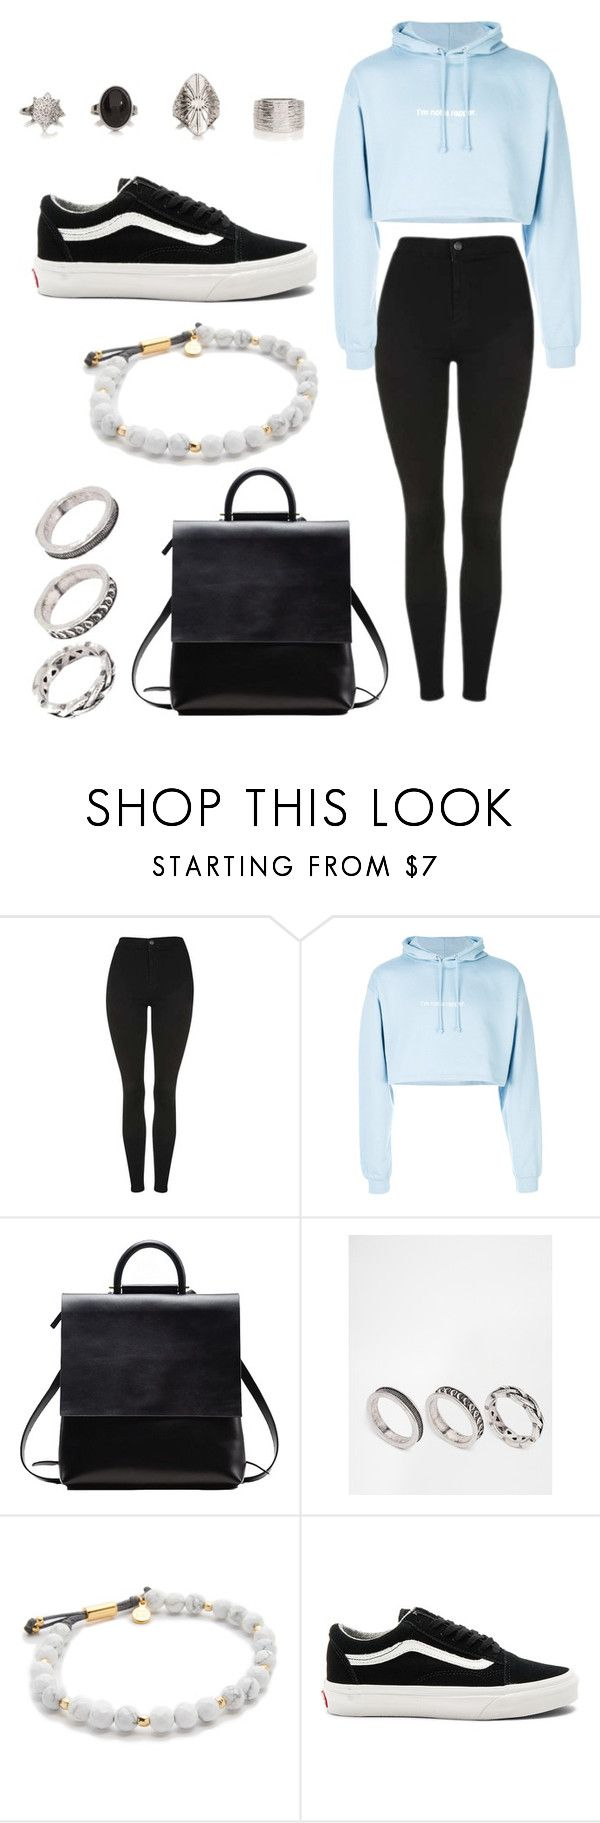 """""""Untitled #78"""" by oliviamfoster ❤ liked on Polyvore featuring Topshop, F.A.M.T., ASOS, Gorjana and Vans"""